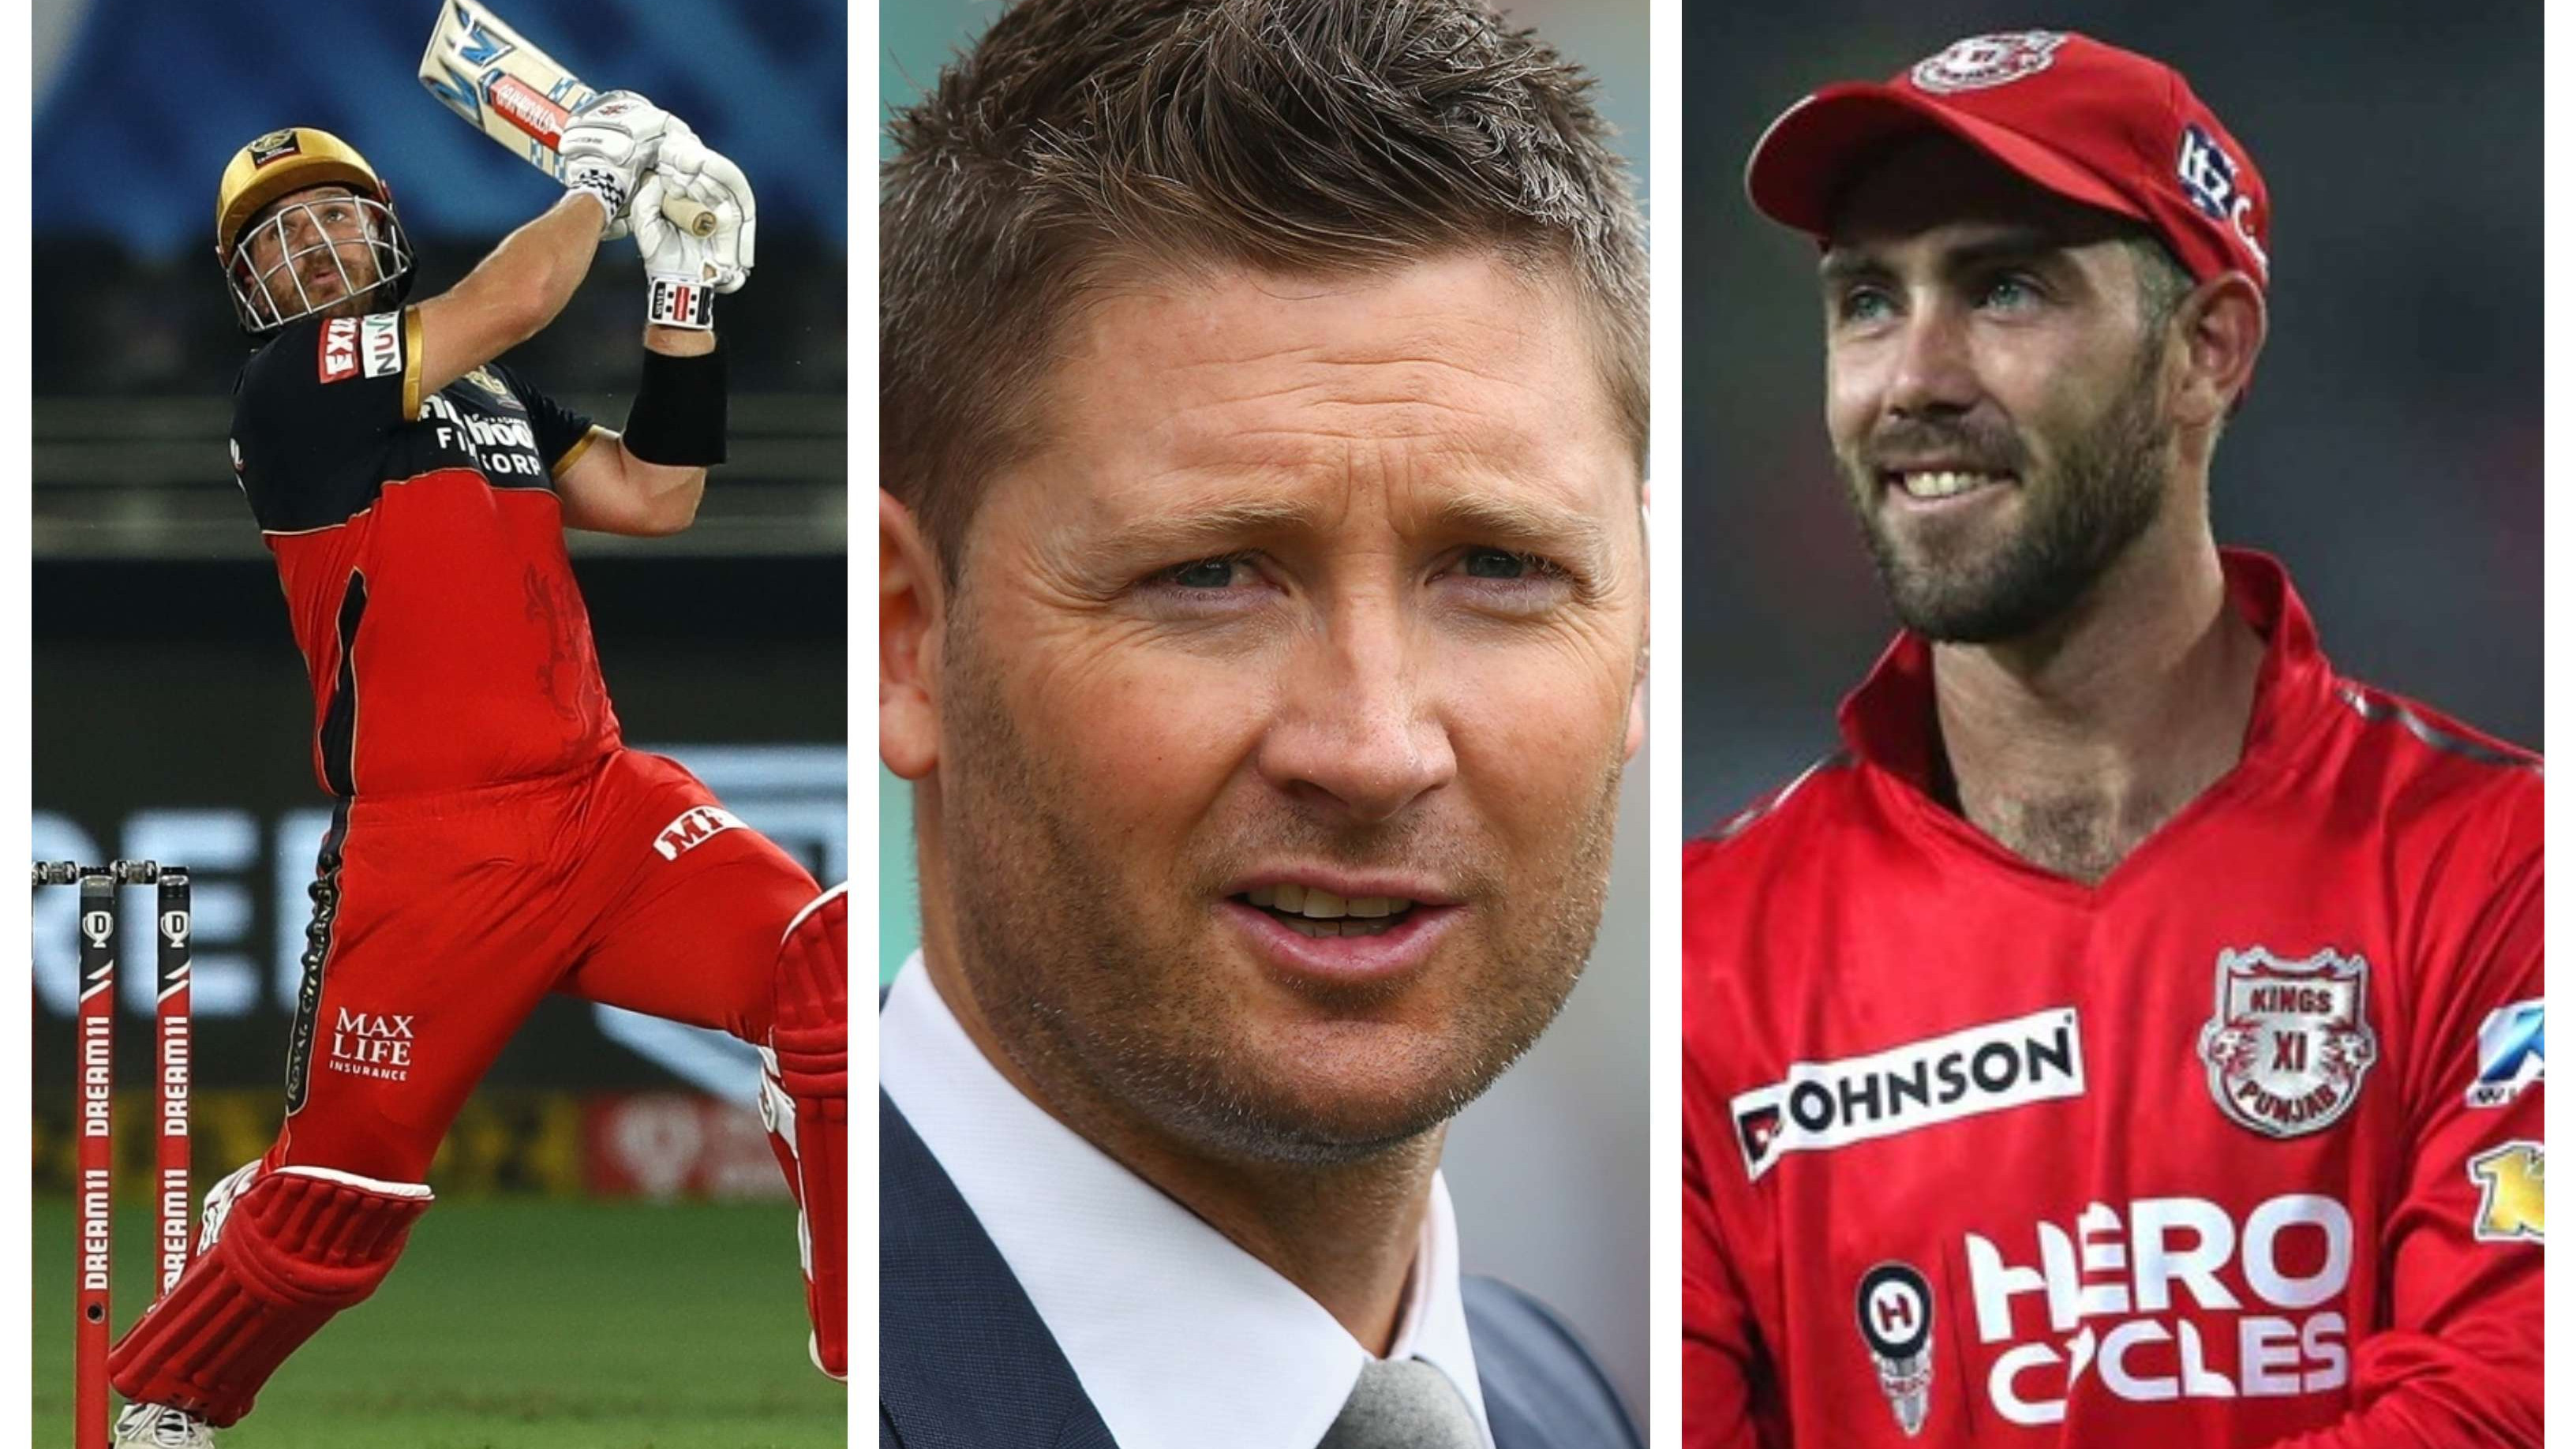 IPL 2021: Clarke shocked by Finch's snub at the auction, says franchises continue to pay Maxwell on his potential